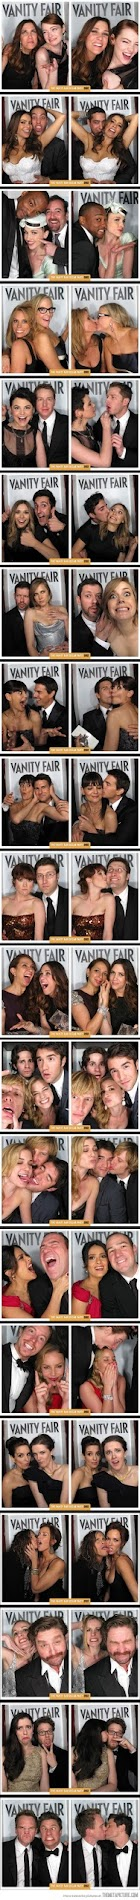 photo booth pictures from the vanity fair oscar party